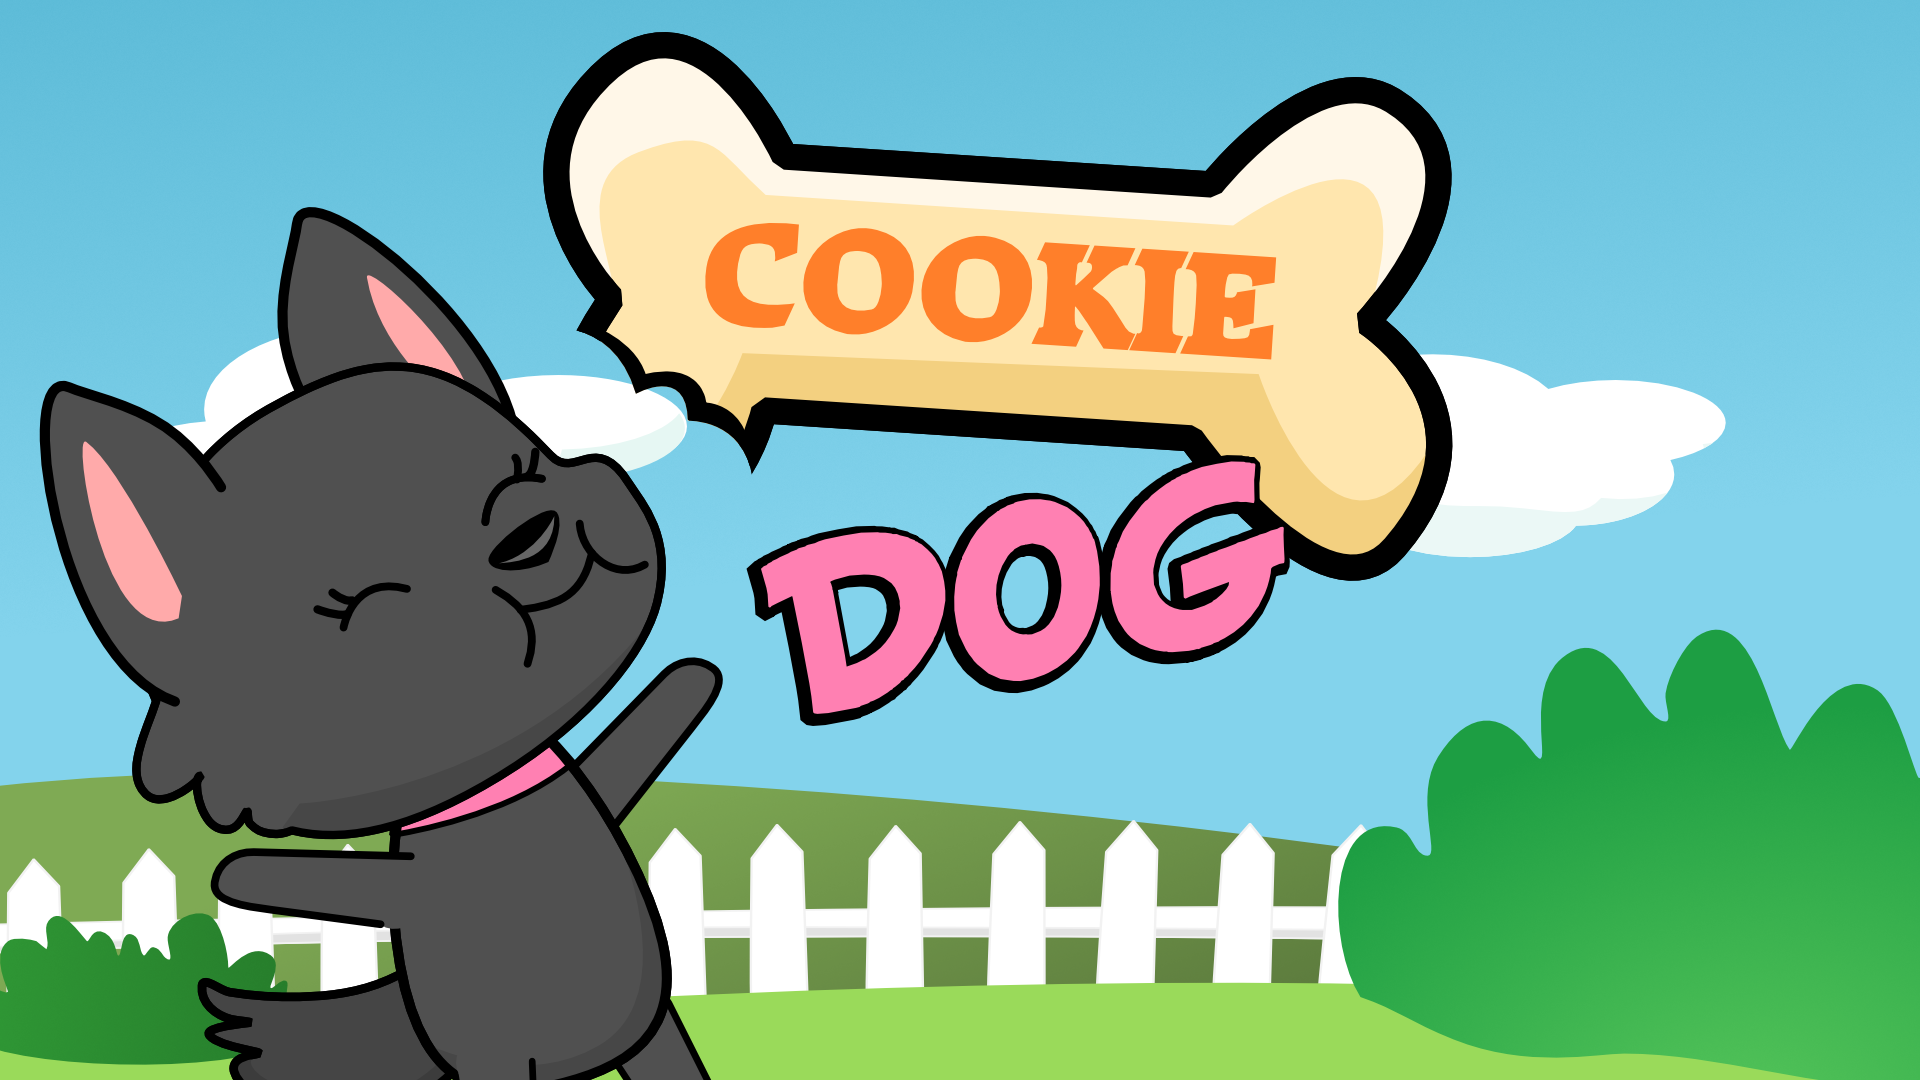 Cookie Dog